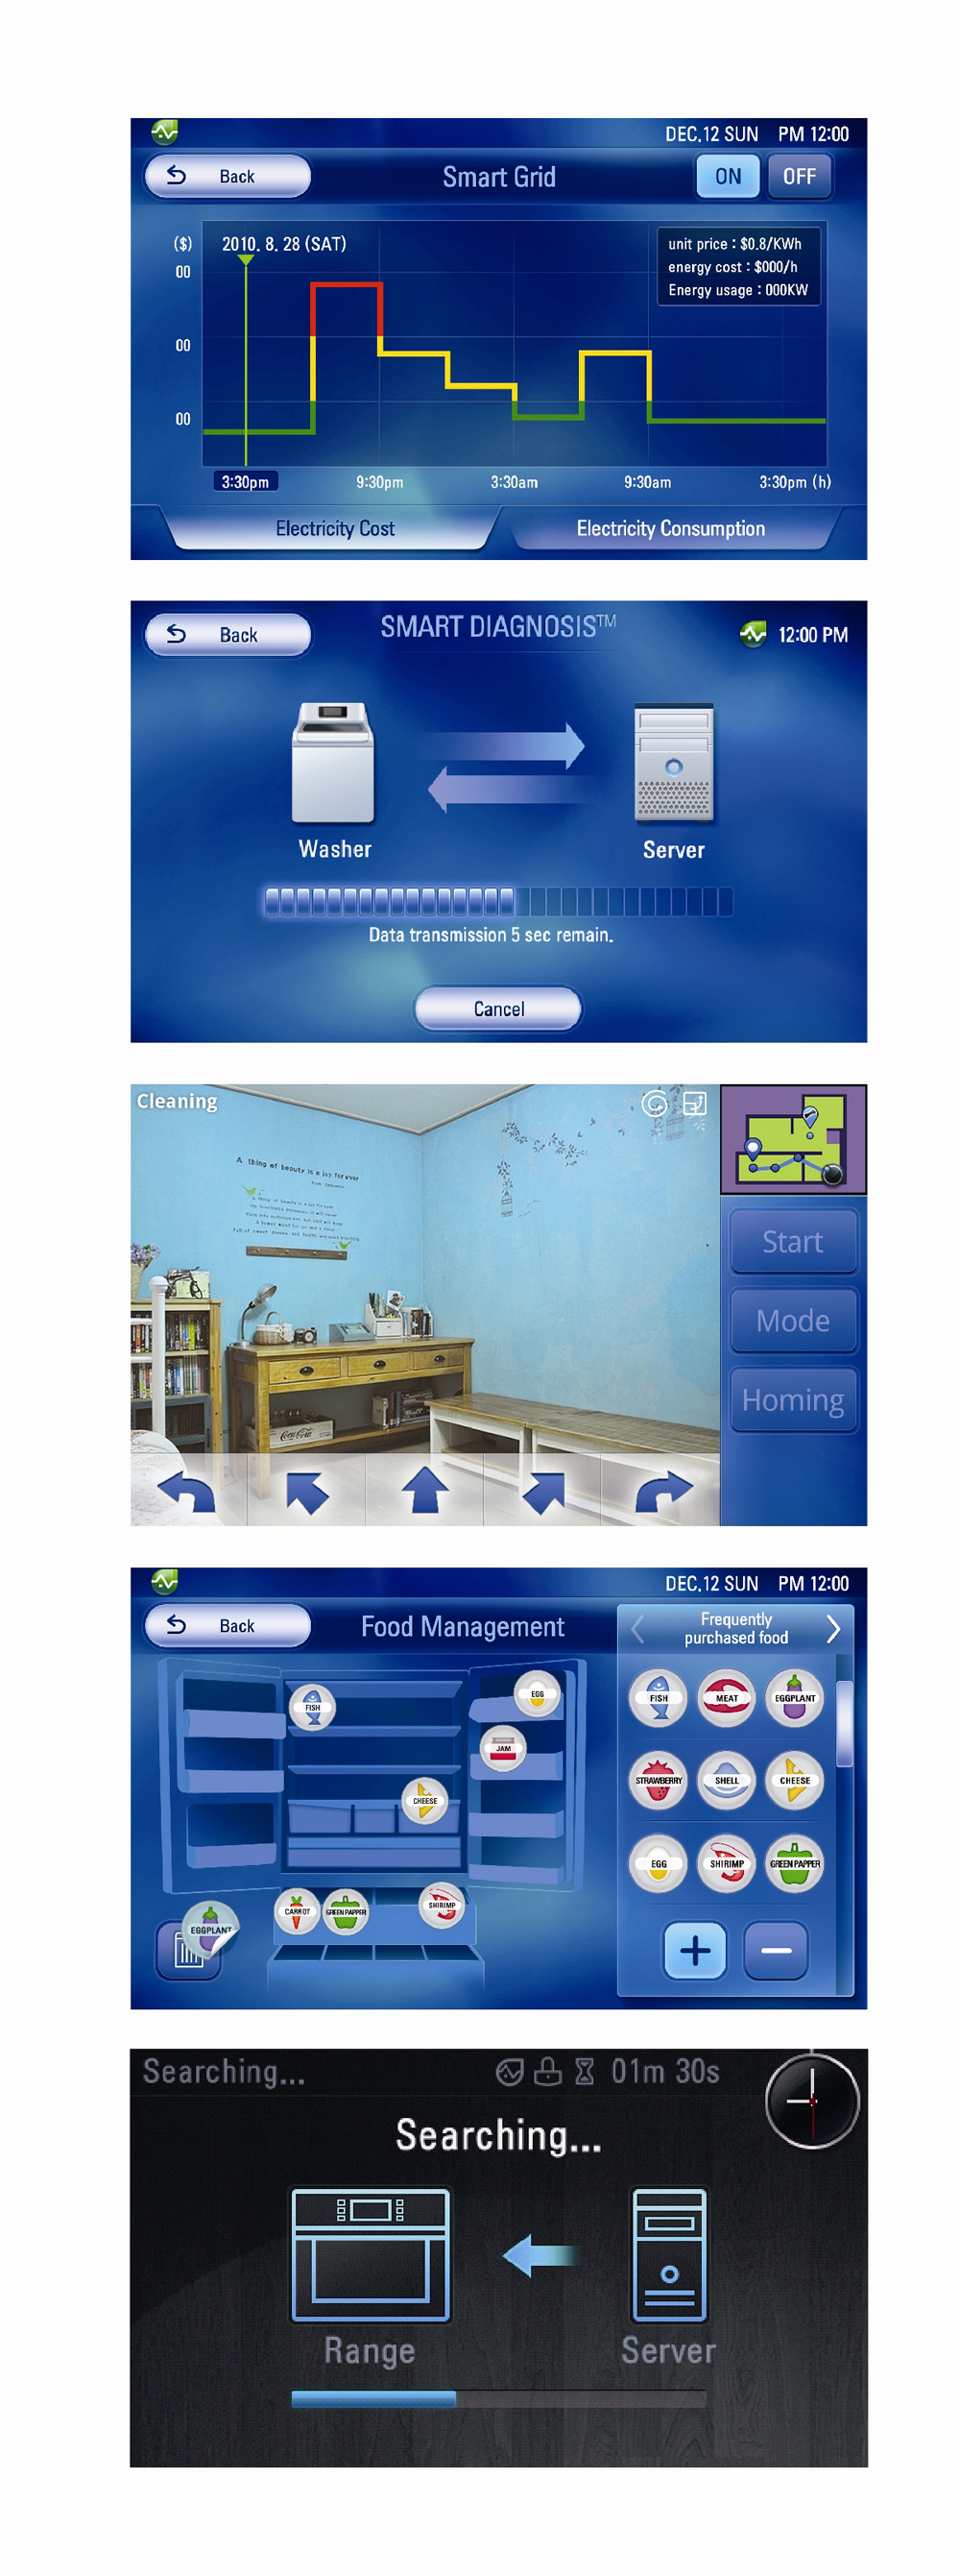 Mutliple screenshots of the LG TOTAL HOME APPLIANCE SOLUTION's user interface, featuring smart grid, smart diagnosis, food management and connection screen